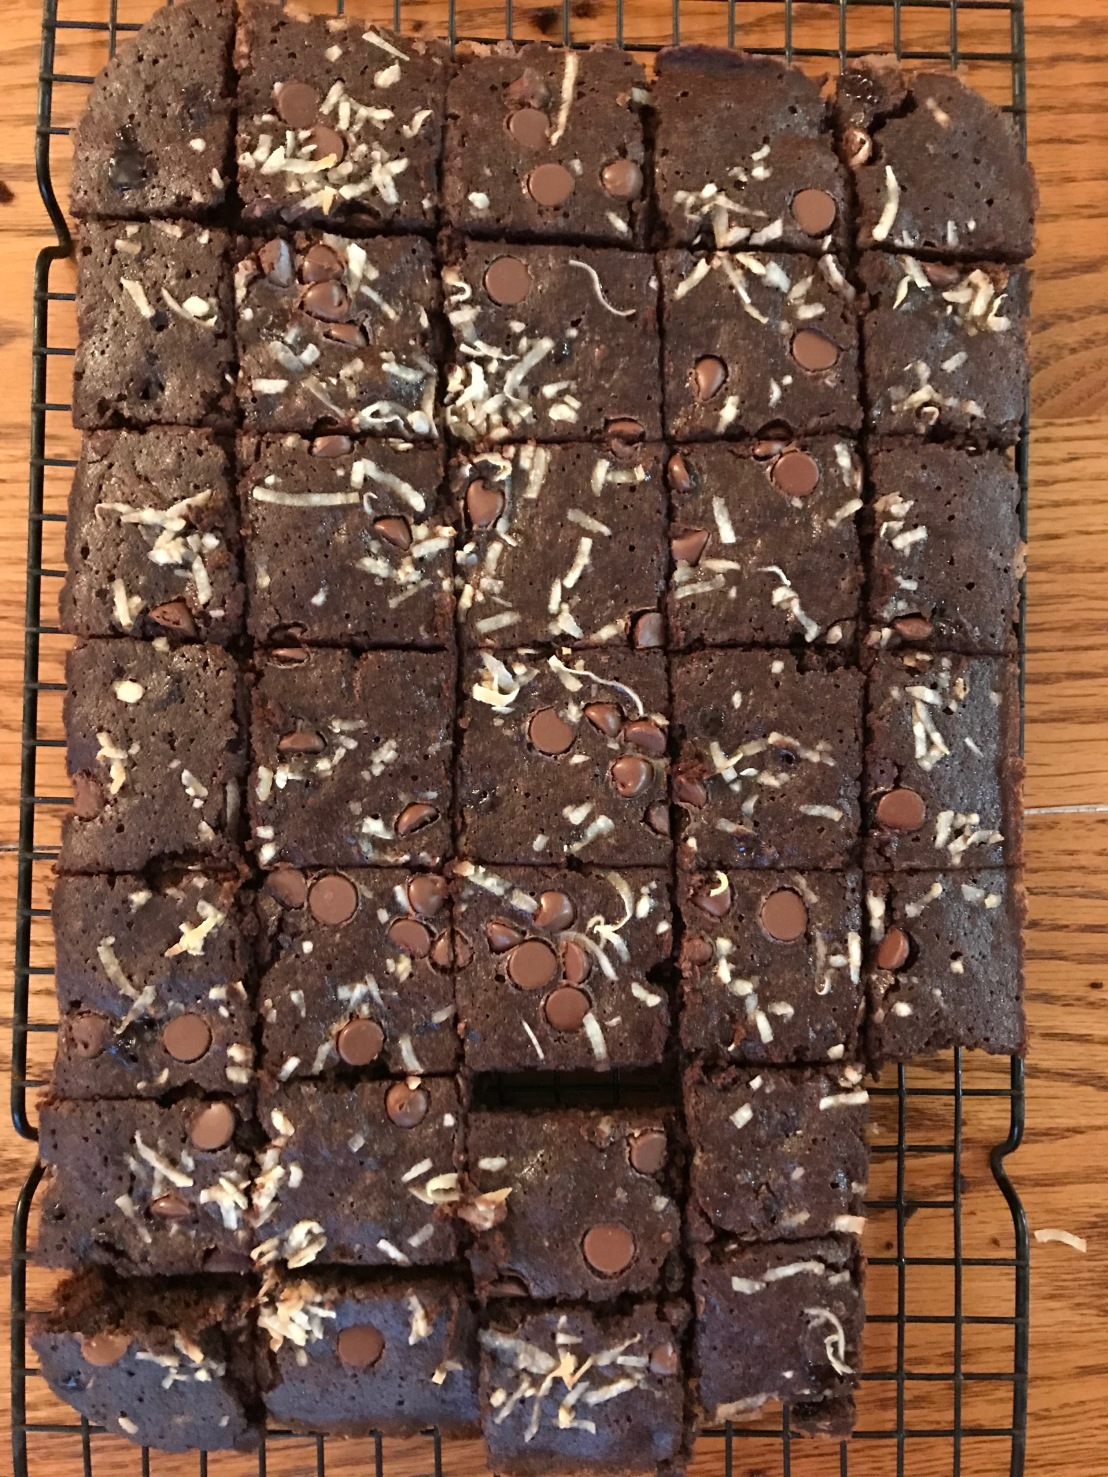 Baking Chronicle No. 57: Coconut FlourBrownies!